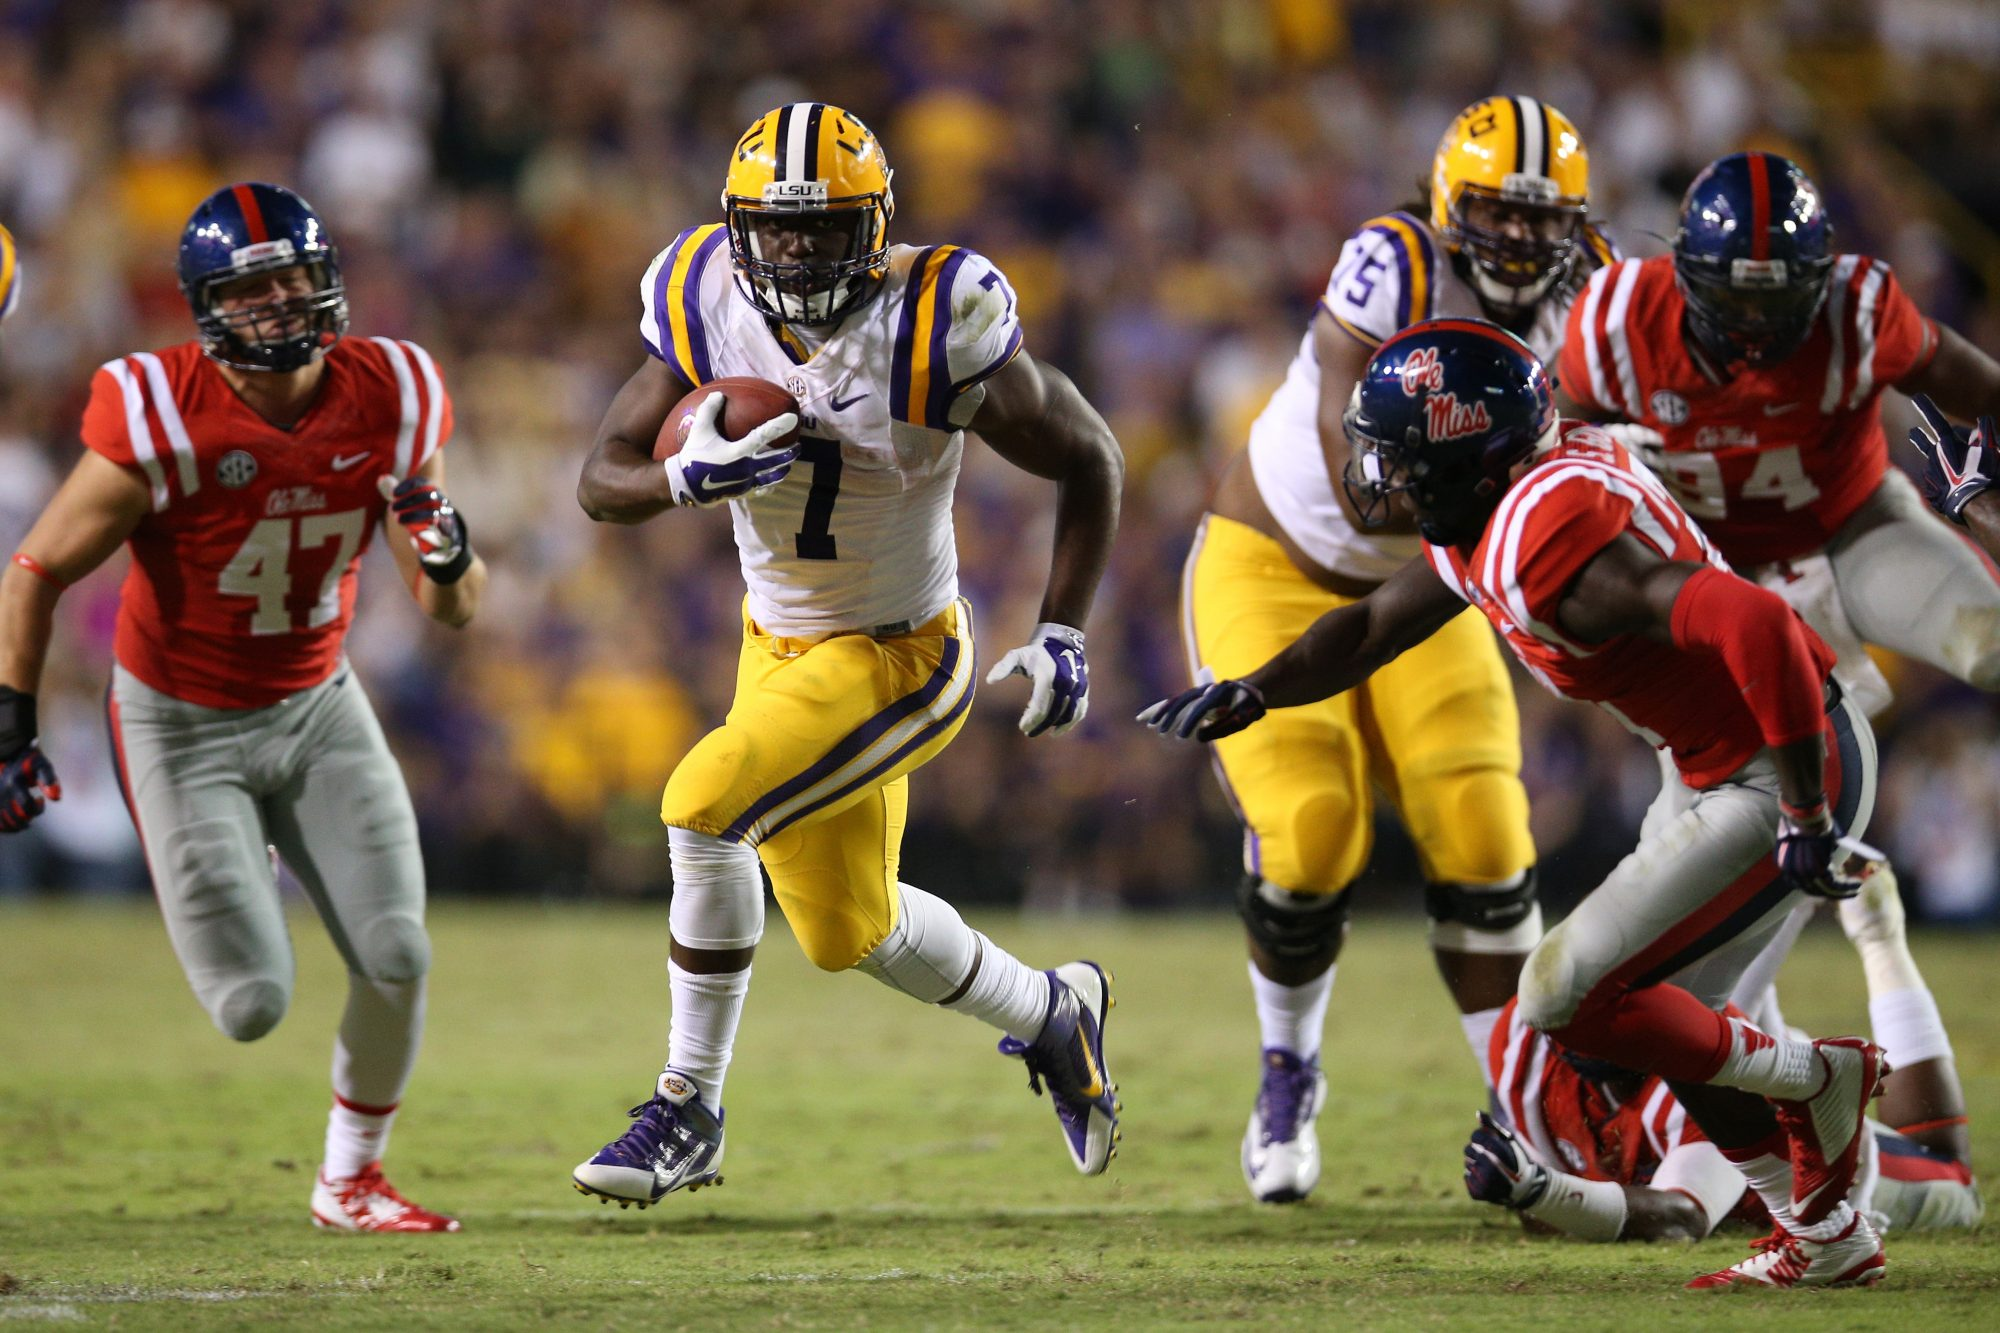 LSU vs. Ole Miss Football